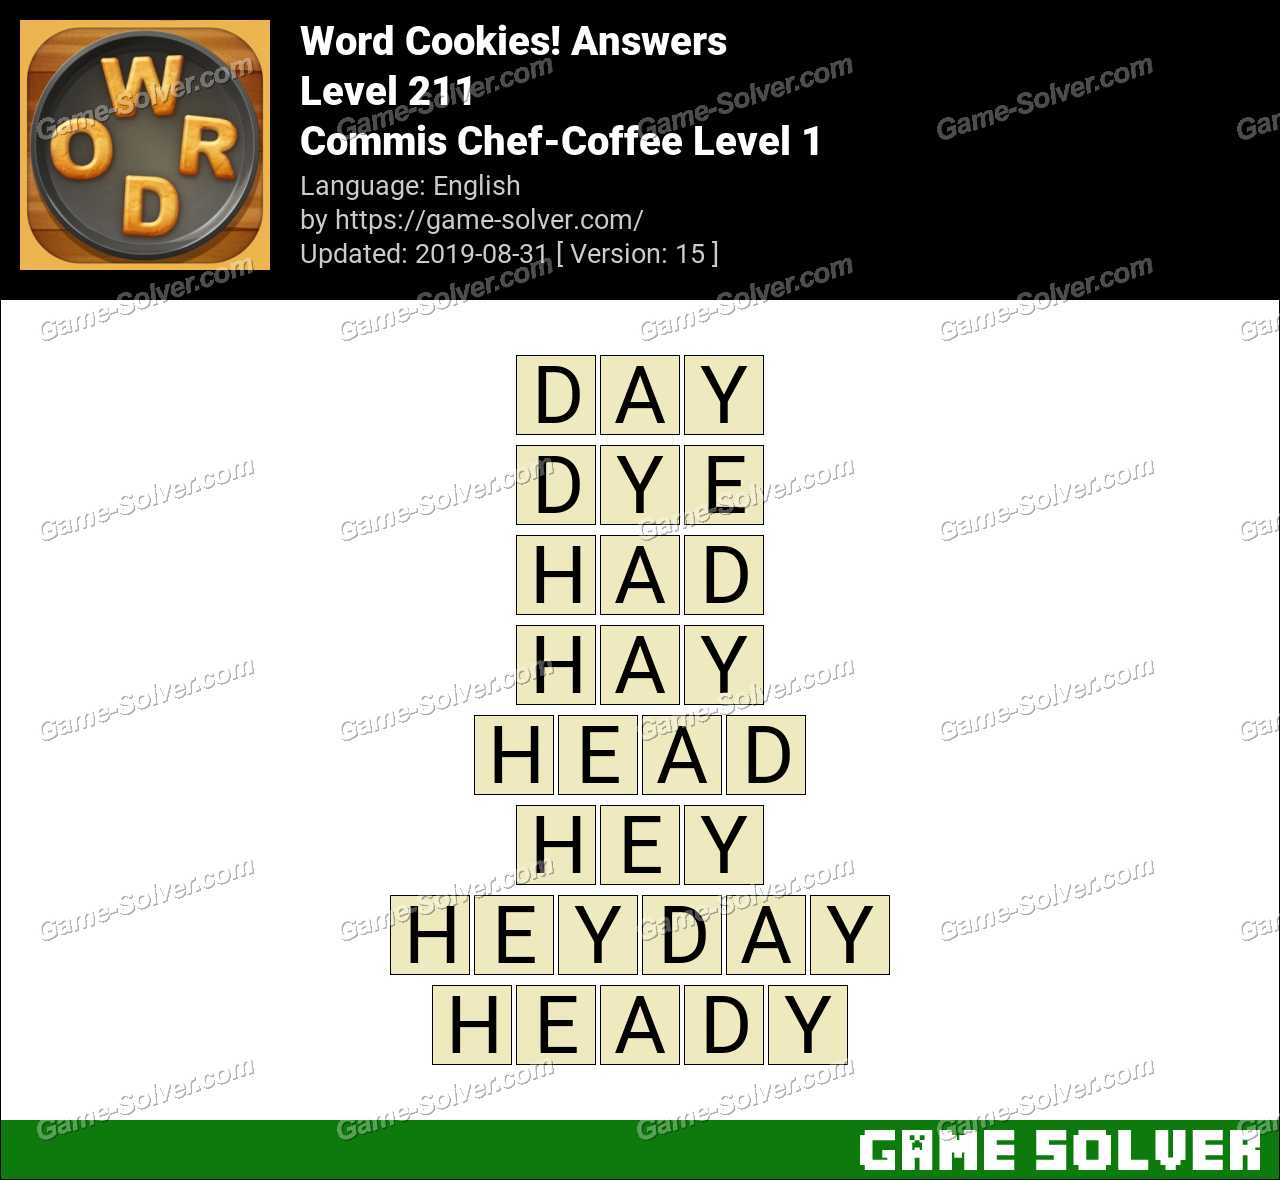 Word Cookies Commis Chef-Coffee Level 1 Answers - Game Solver